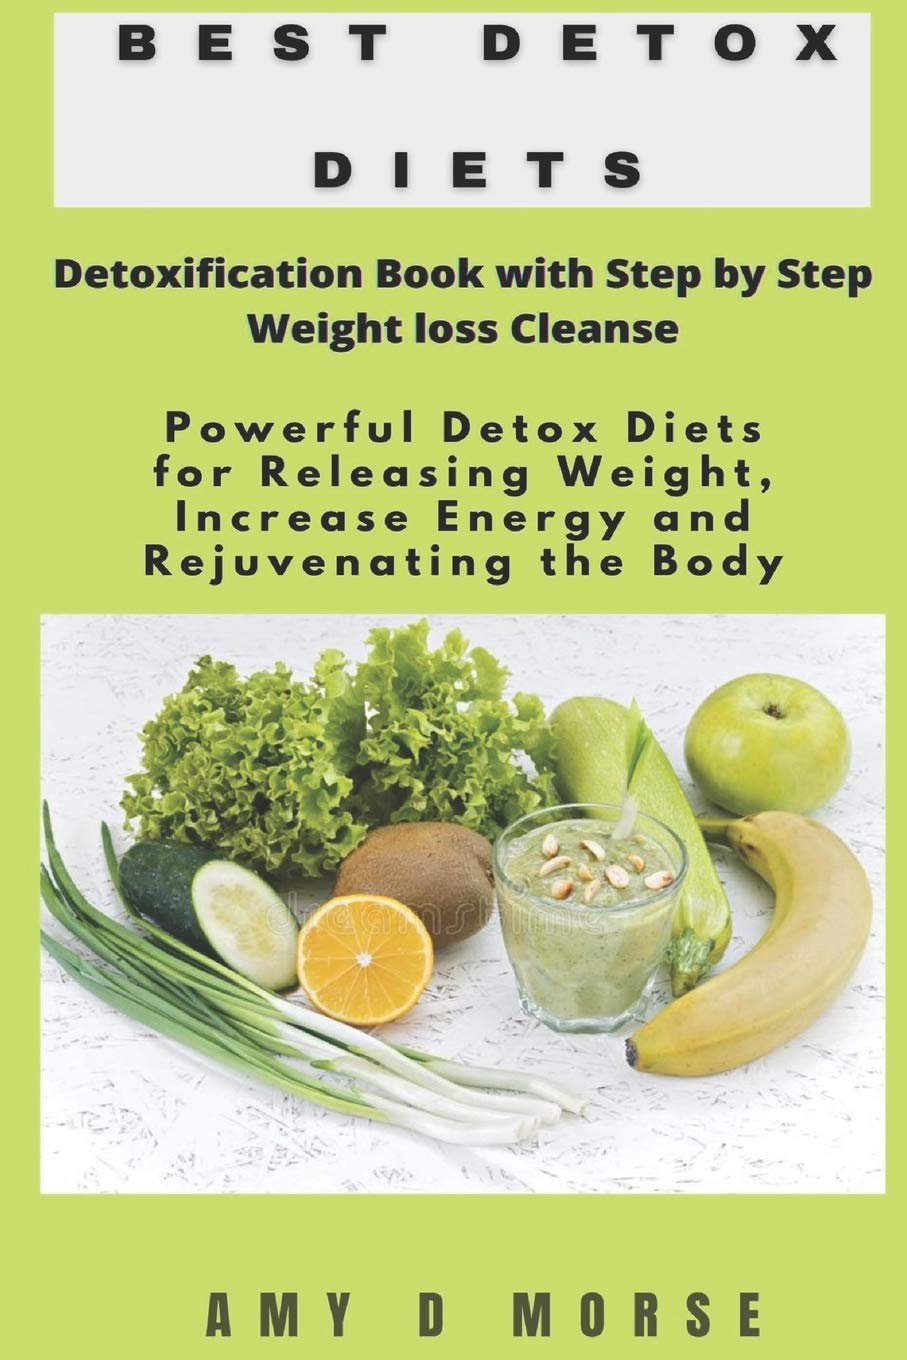 Best Detox Diets: Detoxification Book with Step by Step Weight loss Cleanse Powerful Detox Diets for Releasing Weight, Increase Energy and Rejuvenating the Body 1